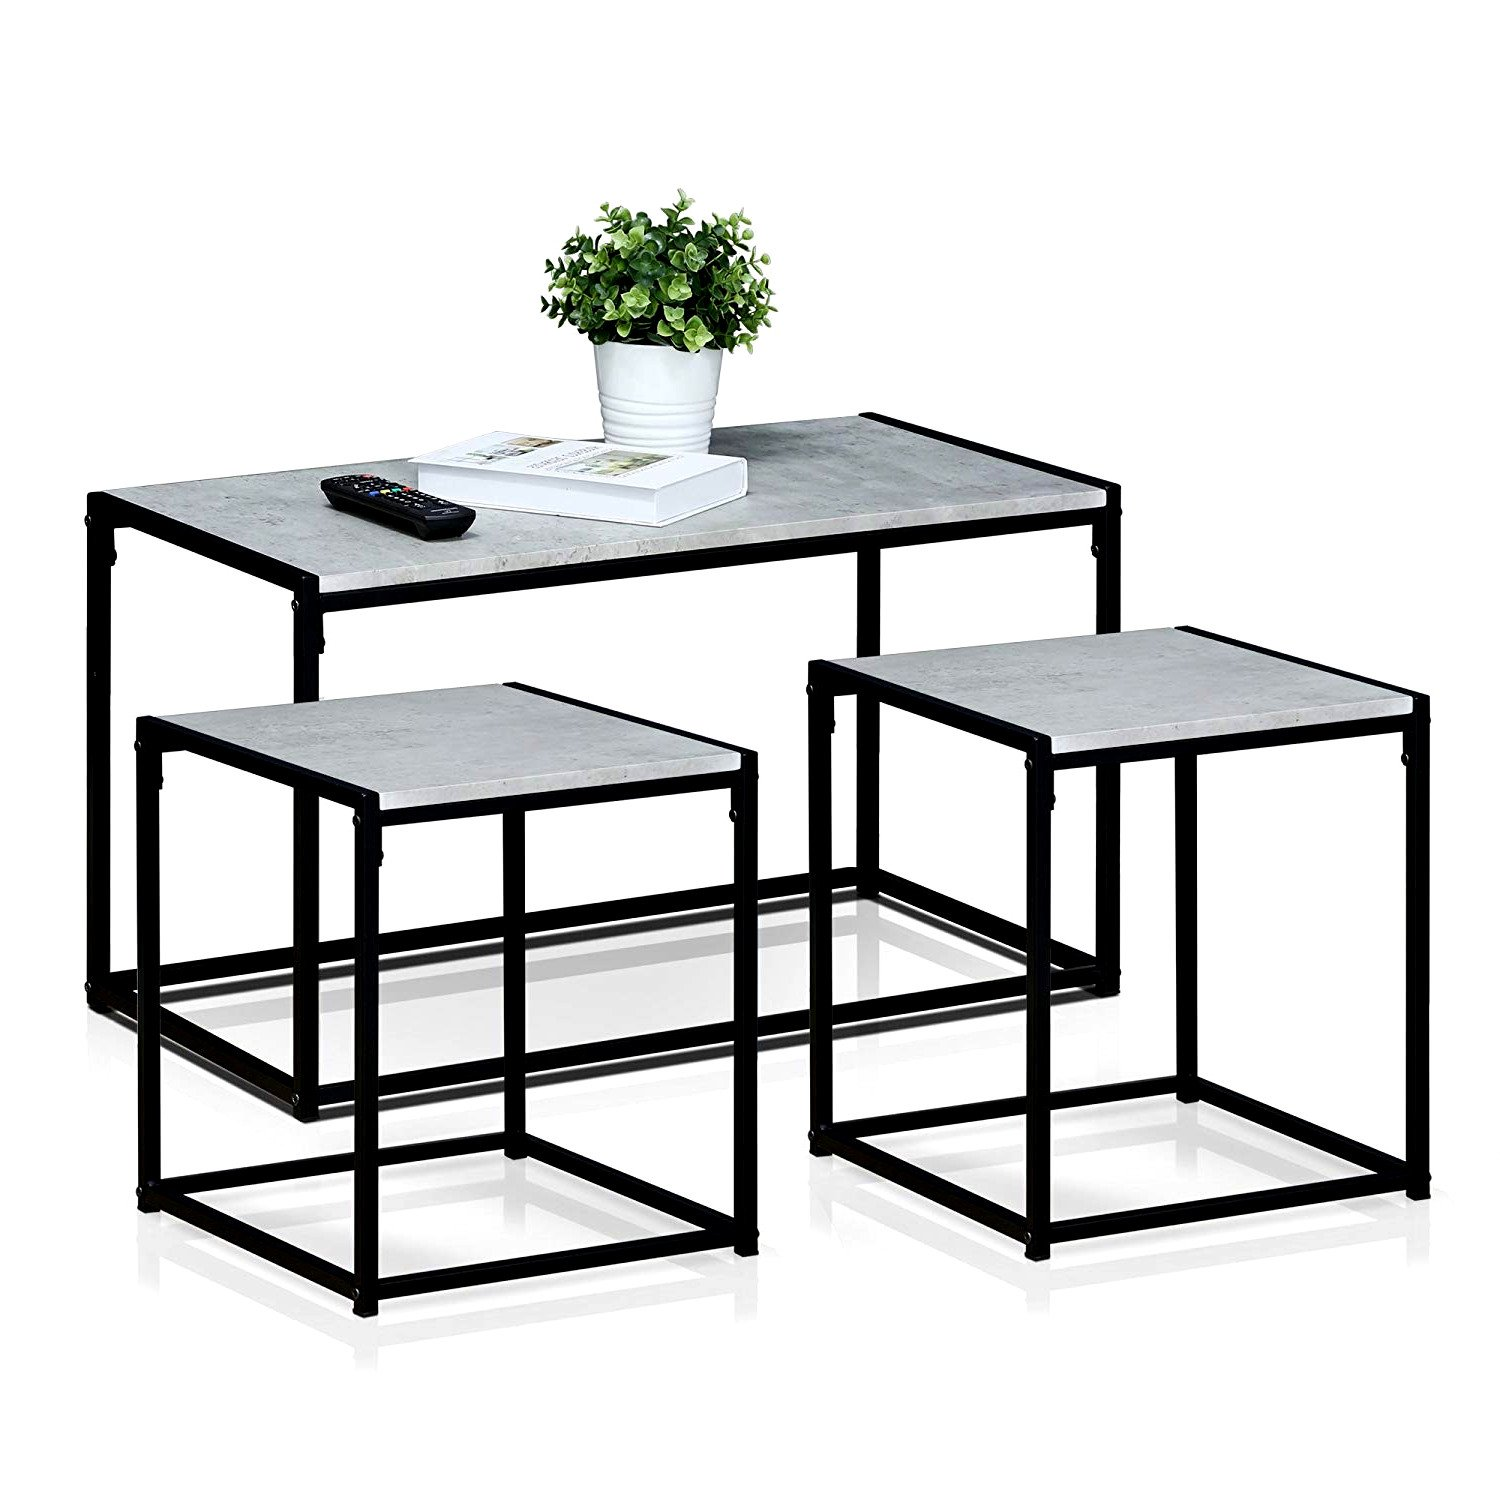 3pc living room set coffee side tables modern minimal low profile stylish stone surface black metal frame home office furniture ebook by easyfundeals